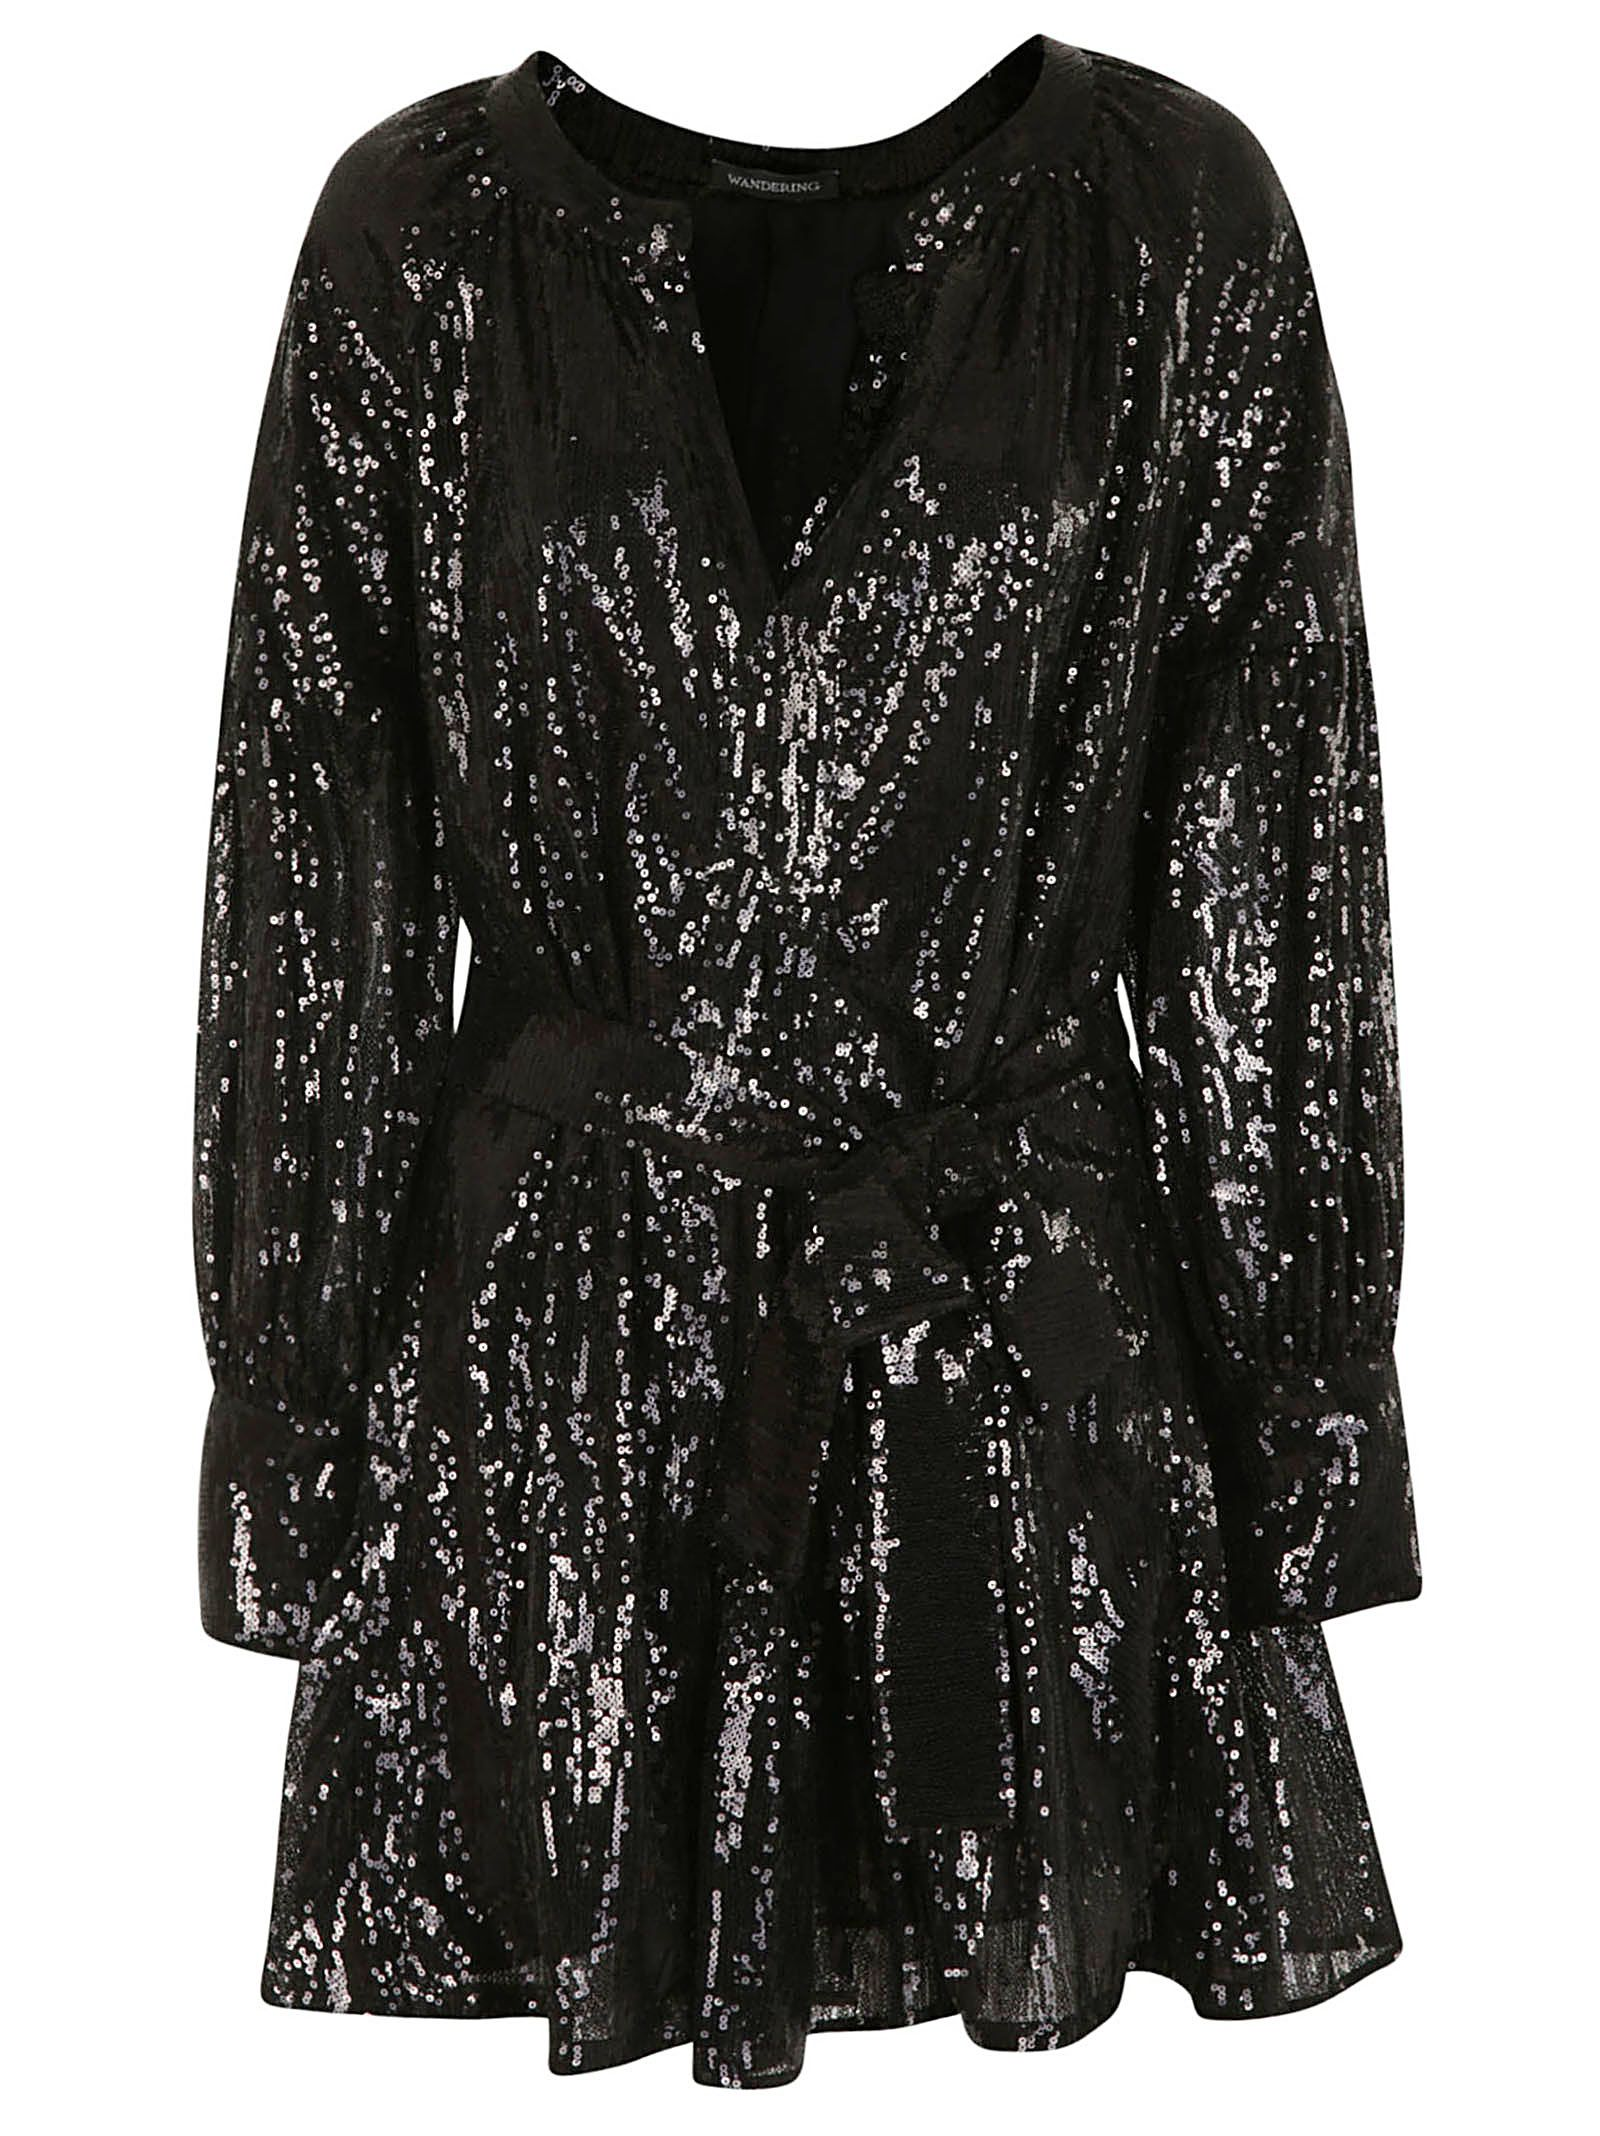 Wandering Sequined Mini Dress